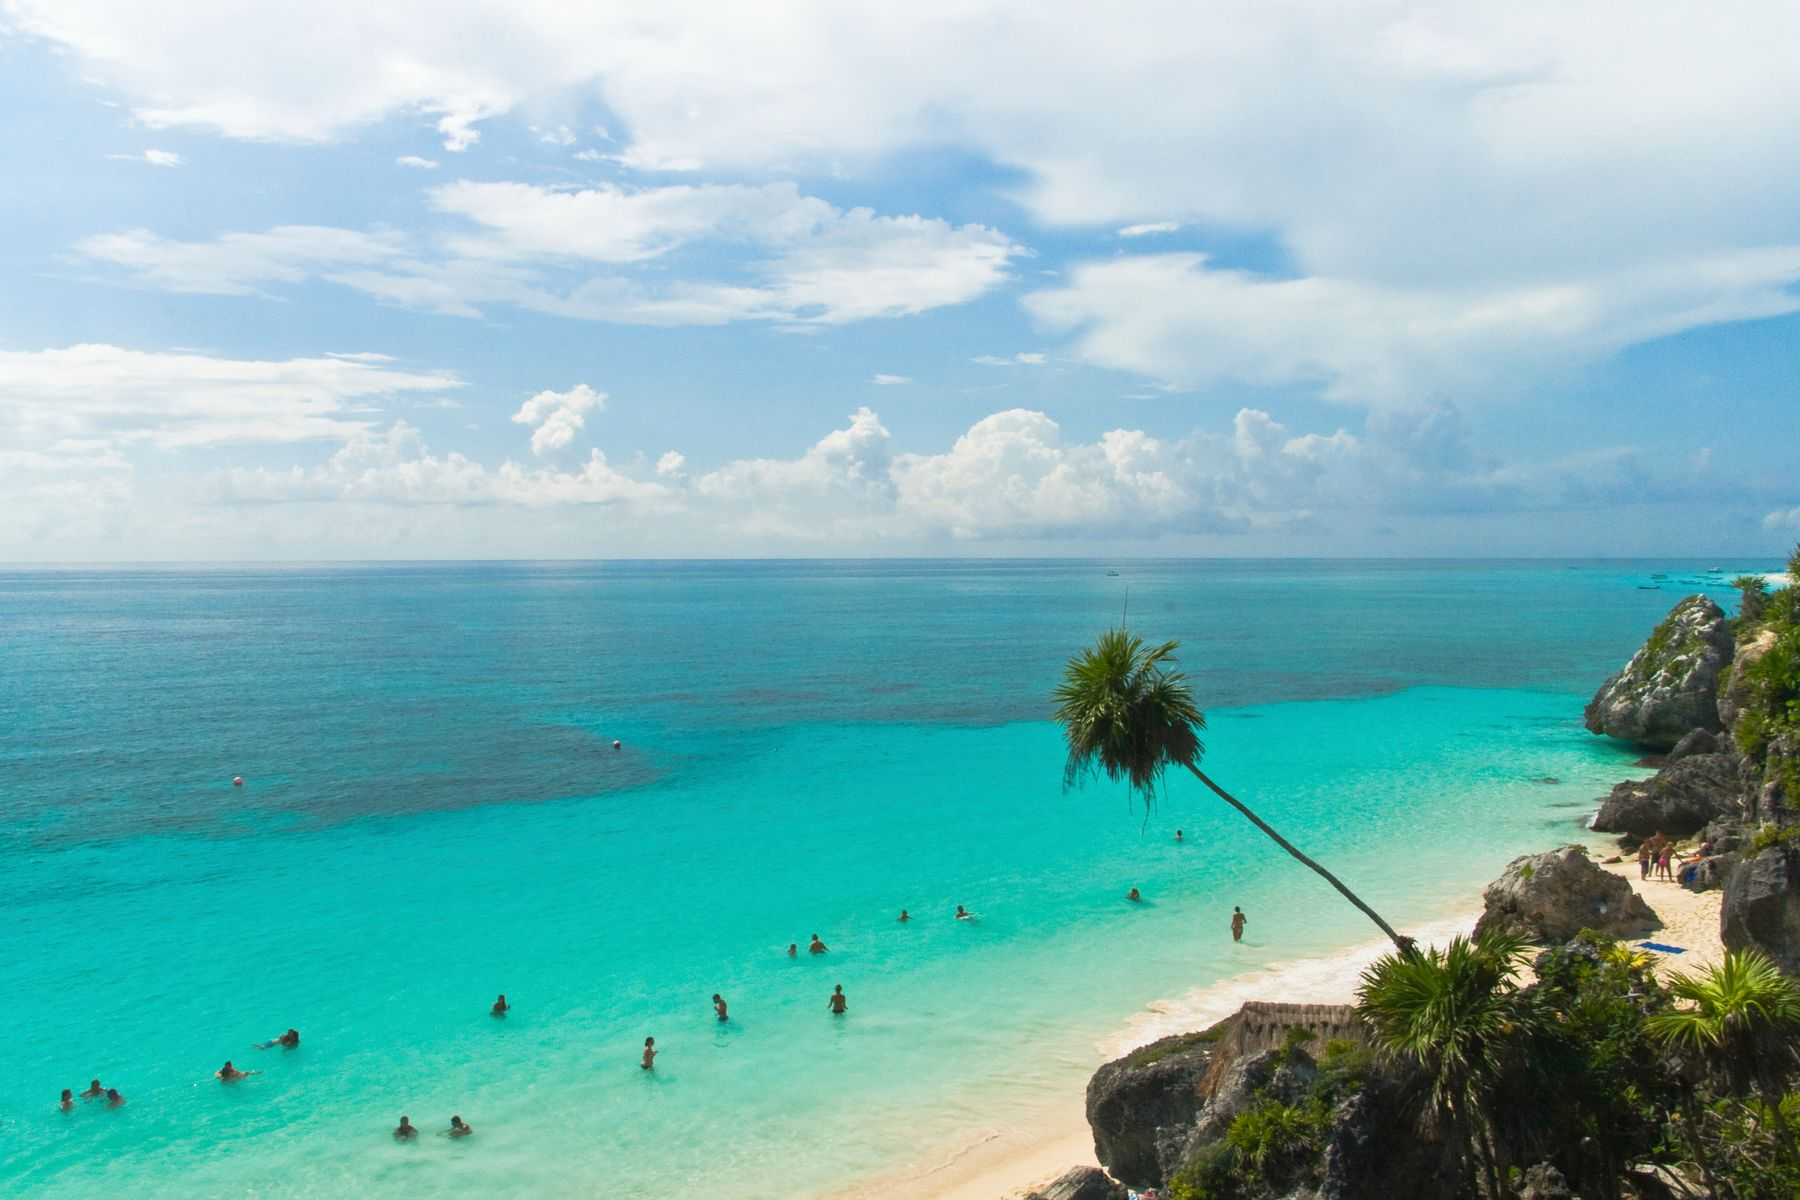 People travel to swim in the blue waters of Mexico